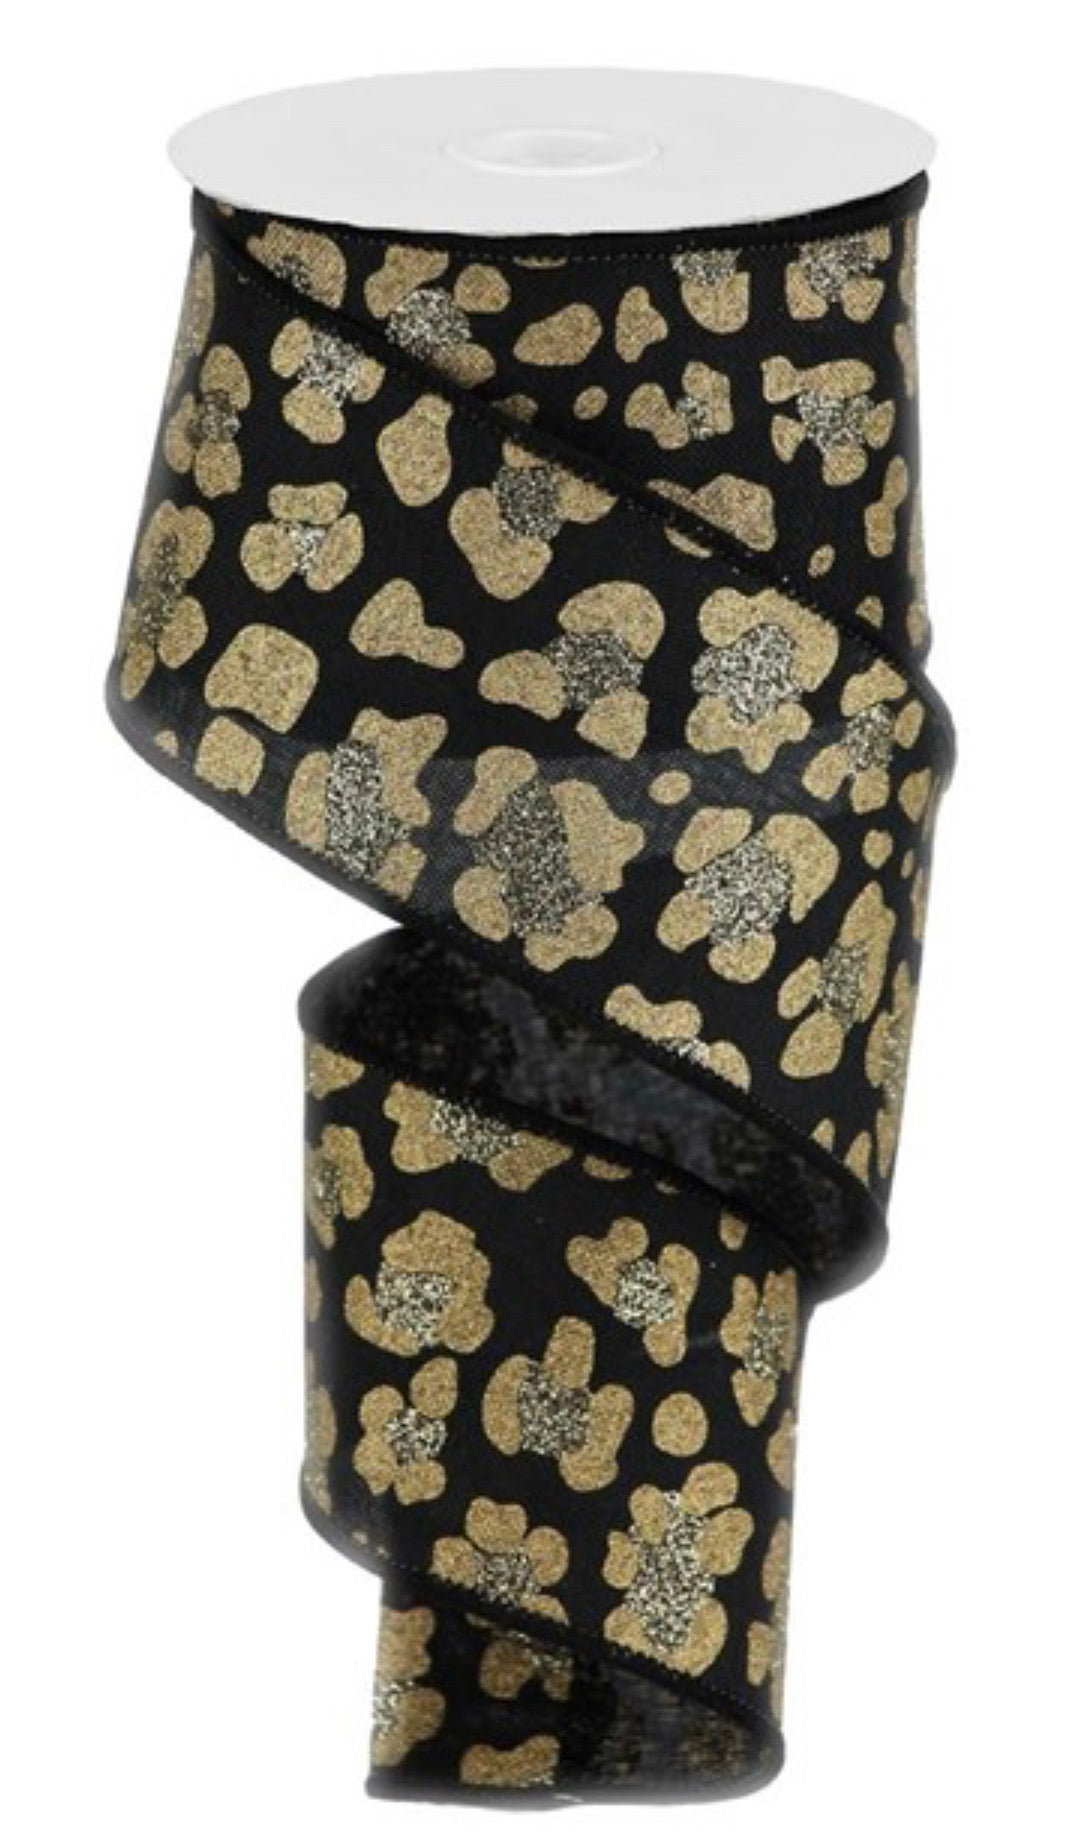 Leopard print ribbon - black and gold 2.5""